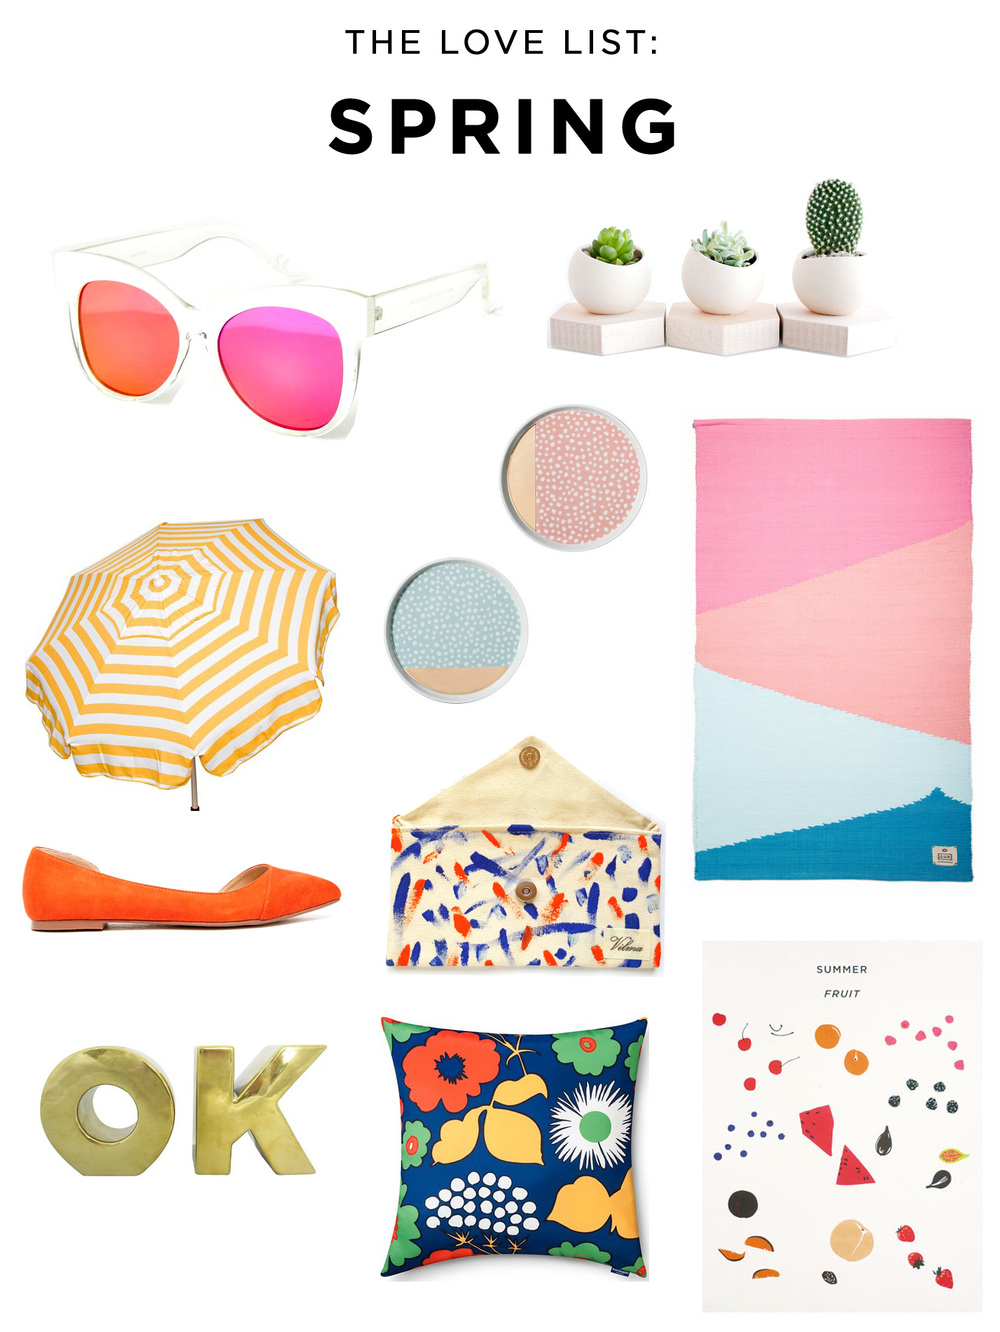 The Love List: Spring | Amy Tangerine